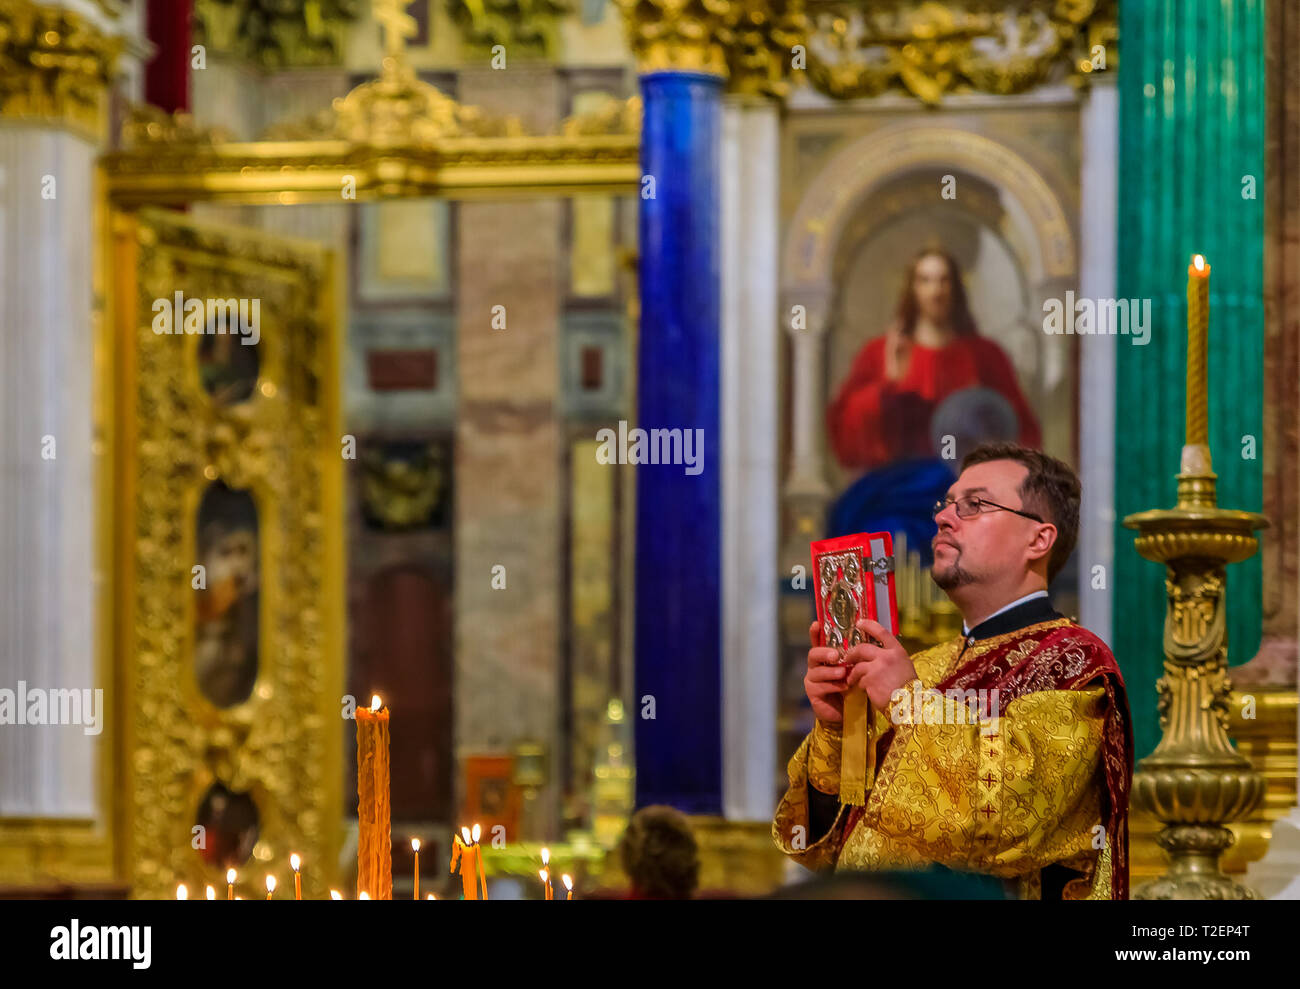 Saint Petersburg, Russia - September 10, 2017: Russian Orthodox priest in traditional clerical clothing serving mass in the Saint Isaac's Russian Orth - Stock Image